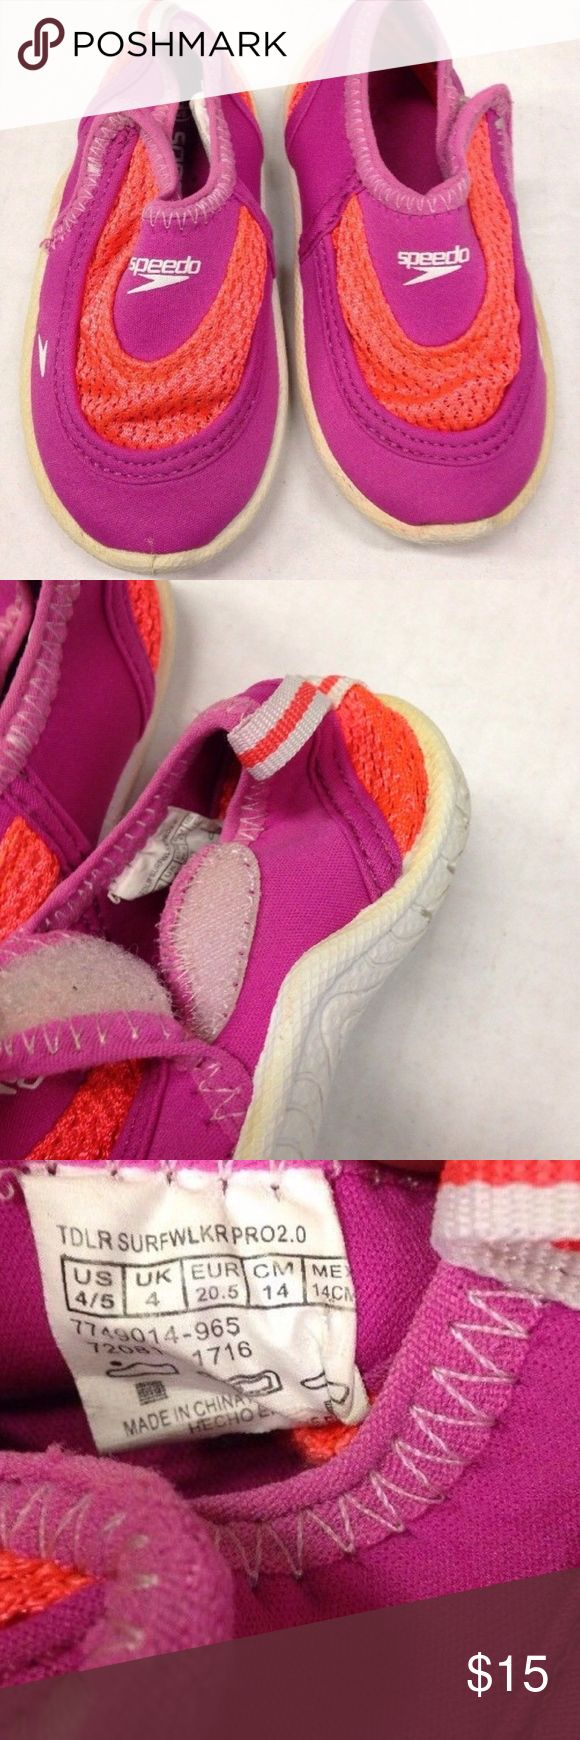 SPEEDO WATER SHOES TODDLER GIRL SZ 4/5 beach NICE PAIR OF SPEEDO WATER SHOES  TODDLER GIRL SIZE 4/5 US  PINK & ORANGE COLORS VELCRO CLOSURE  GOOD USED CONDITION. PLENTY OF LIFE LEFT  SEE PICTURES FOR DETAILS  PLEASE LOOK AT MY OTHER AUCTIONS & CONTACT ME FOR ANY QUESTIONS Speedo Shoes Water Shoes